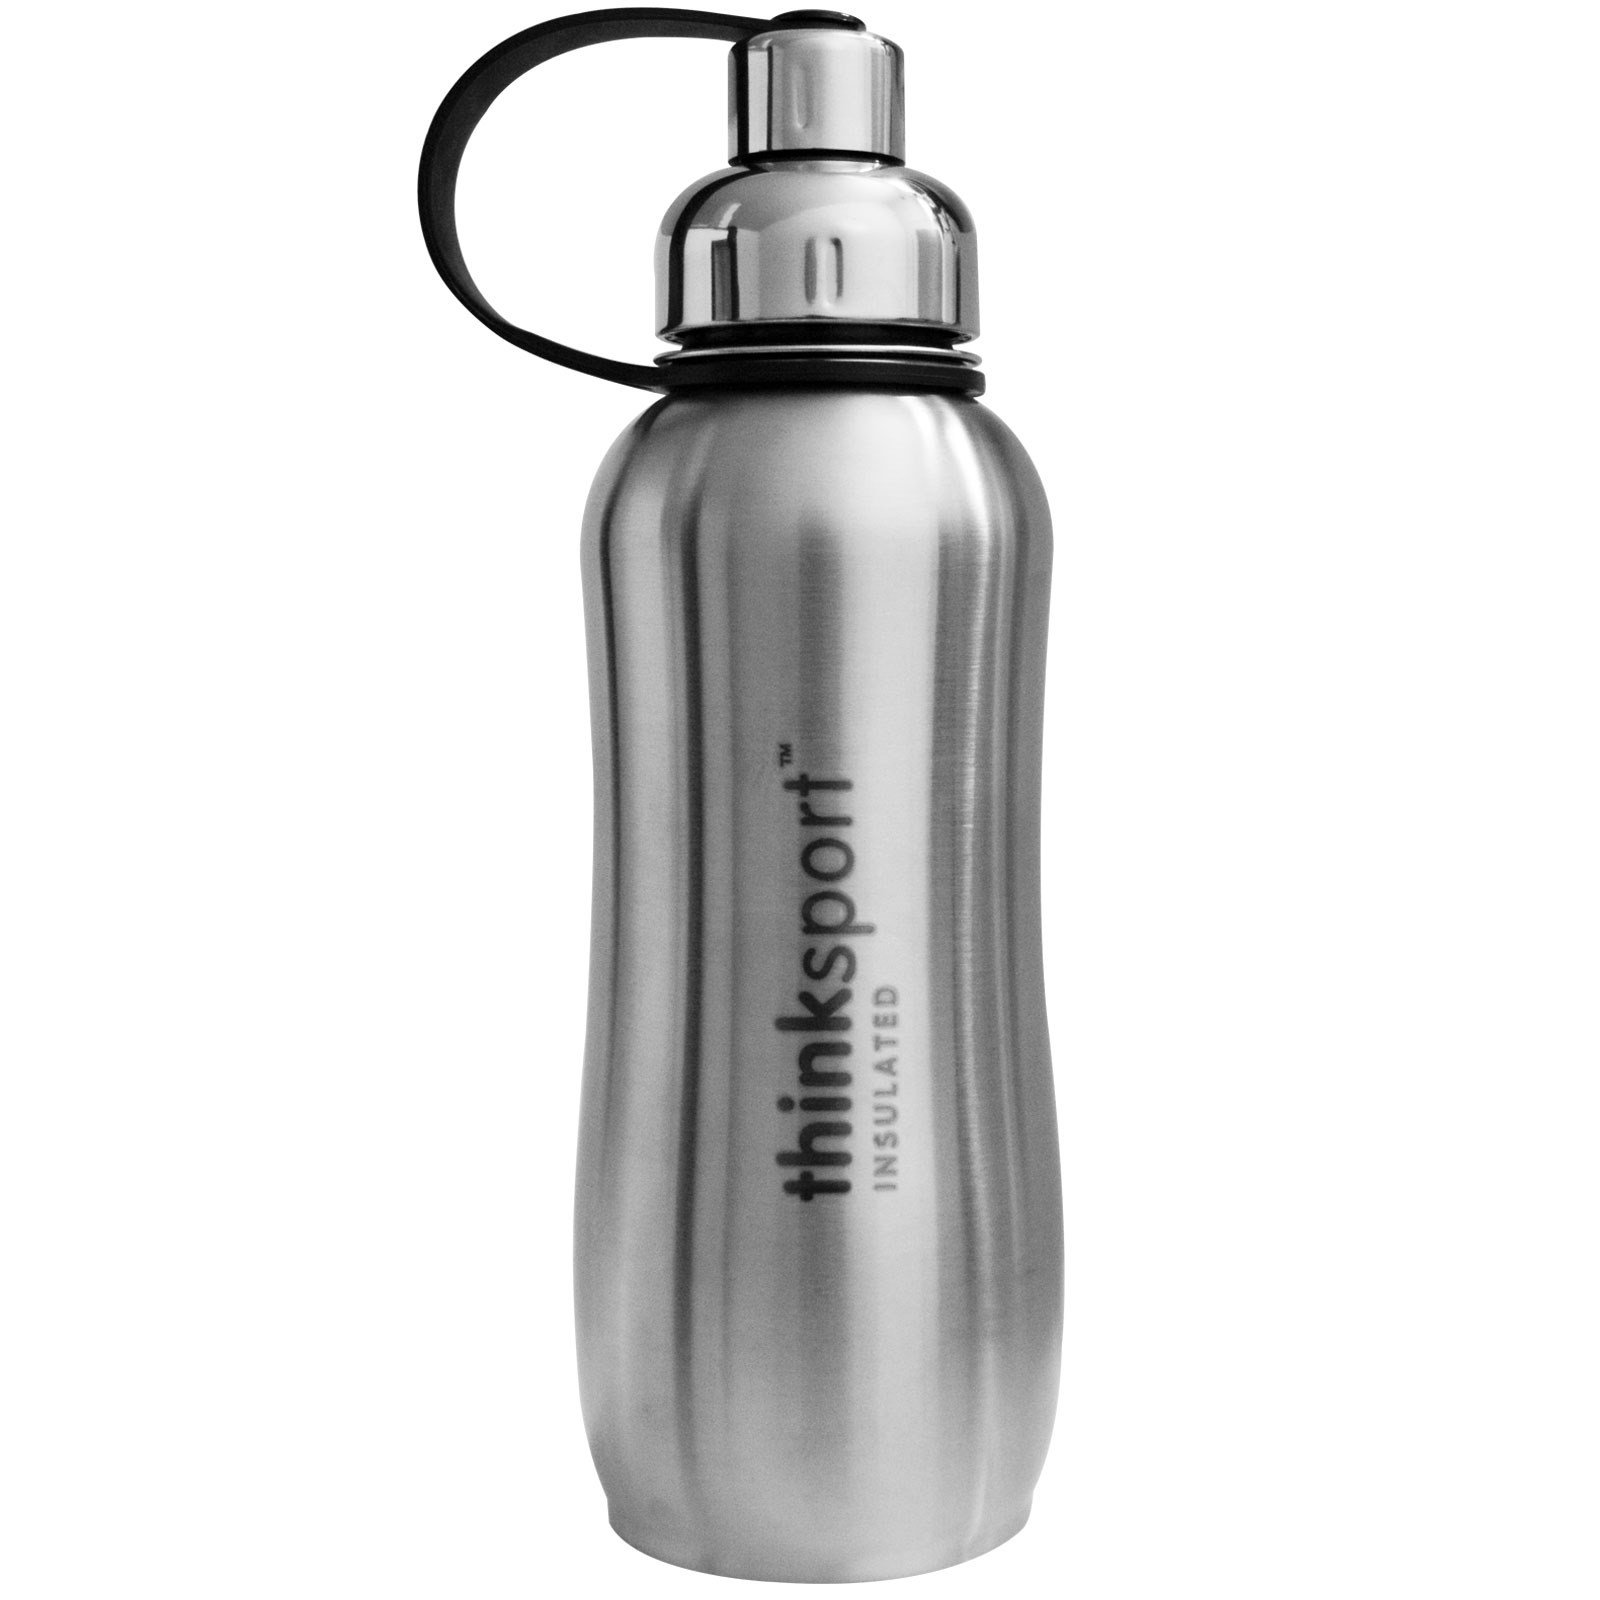 Think Thinksport Insulated Sports Bottle Silver 25